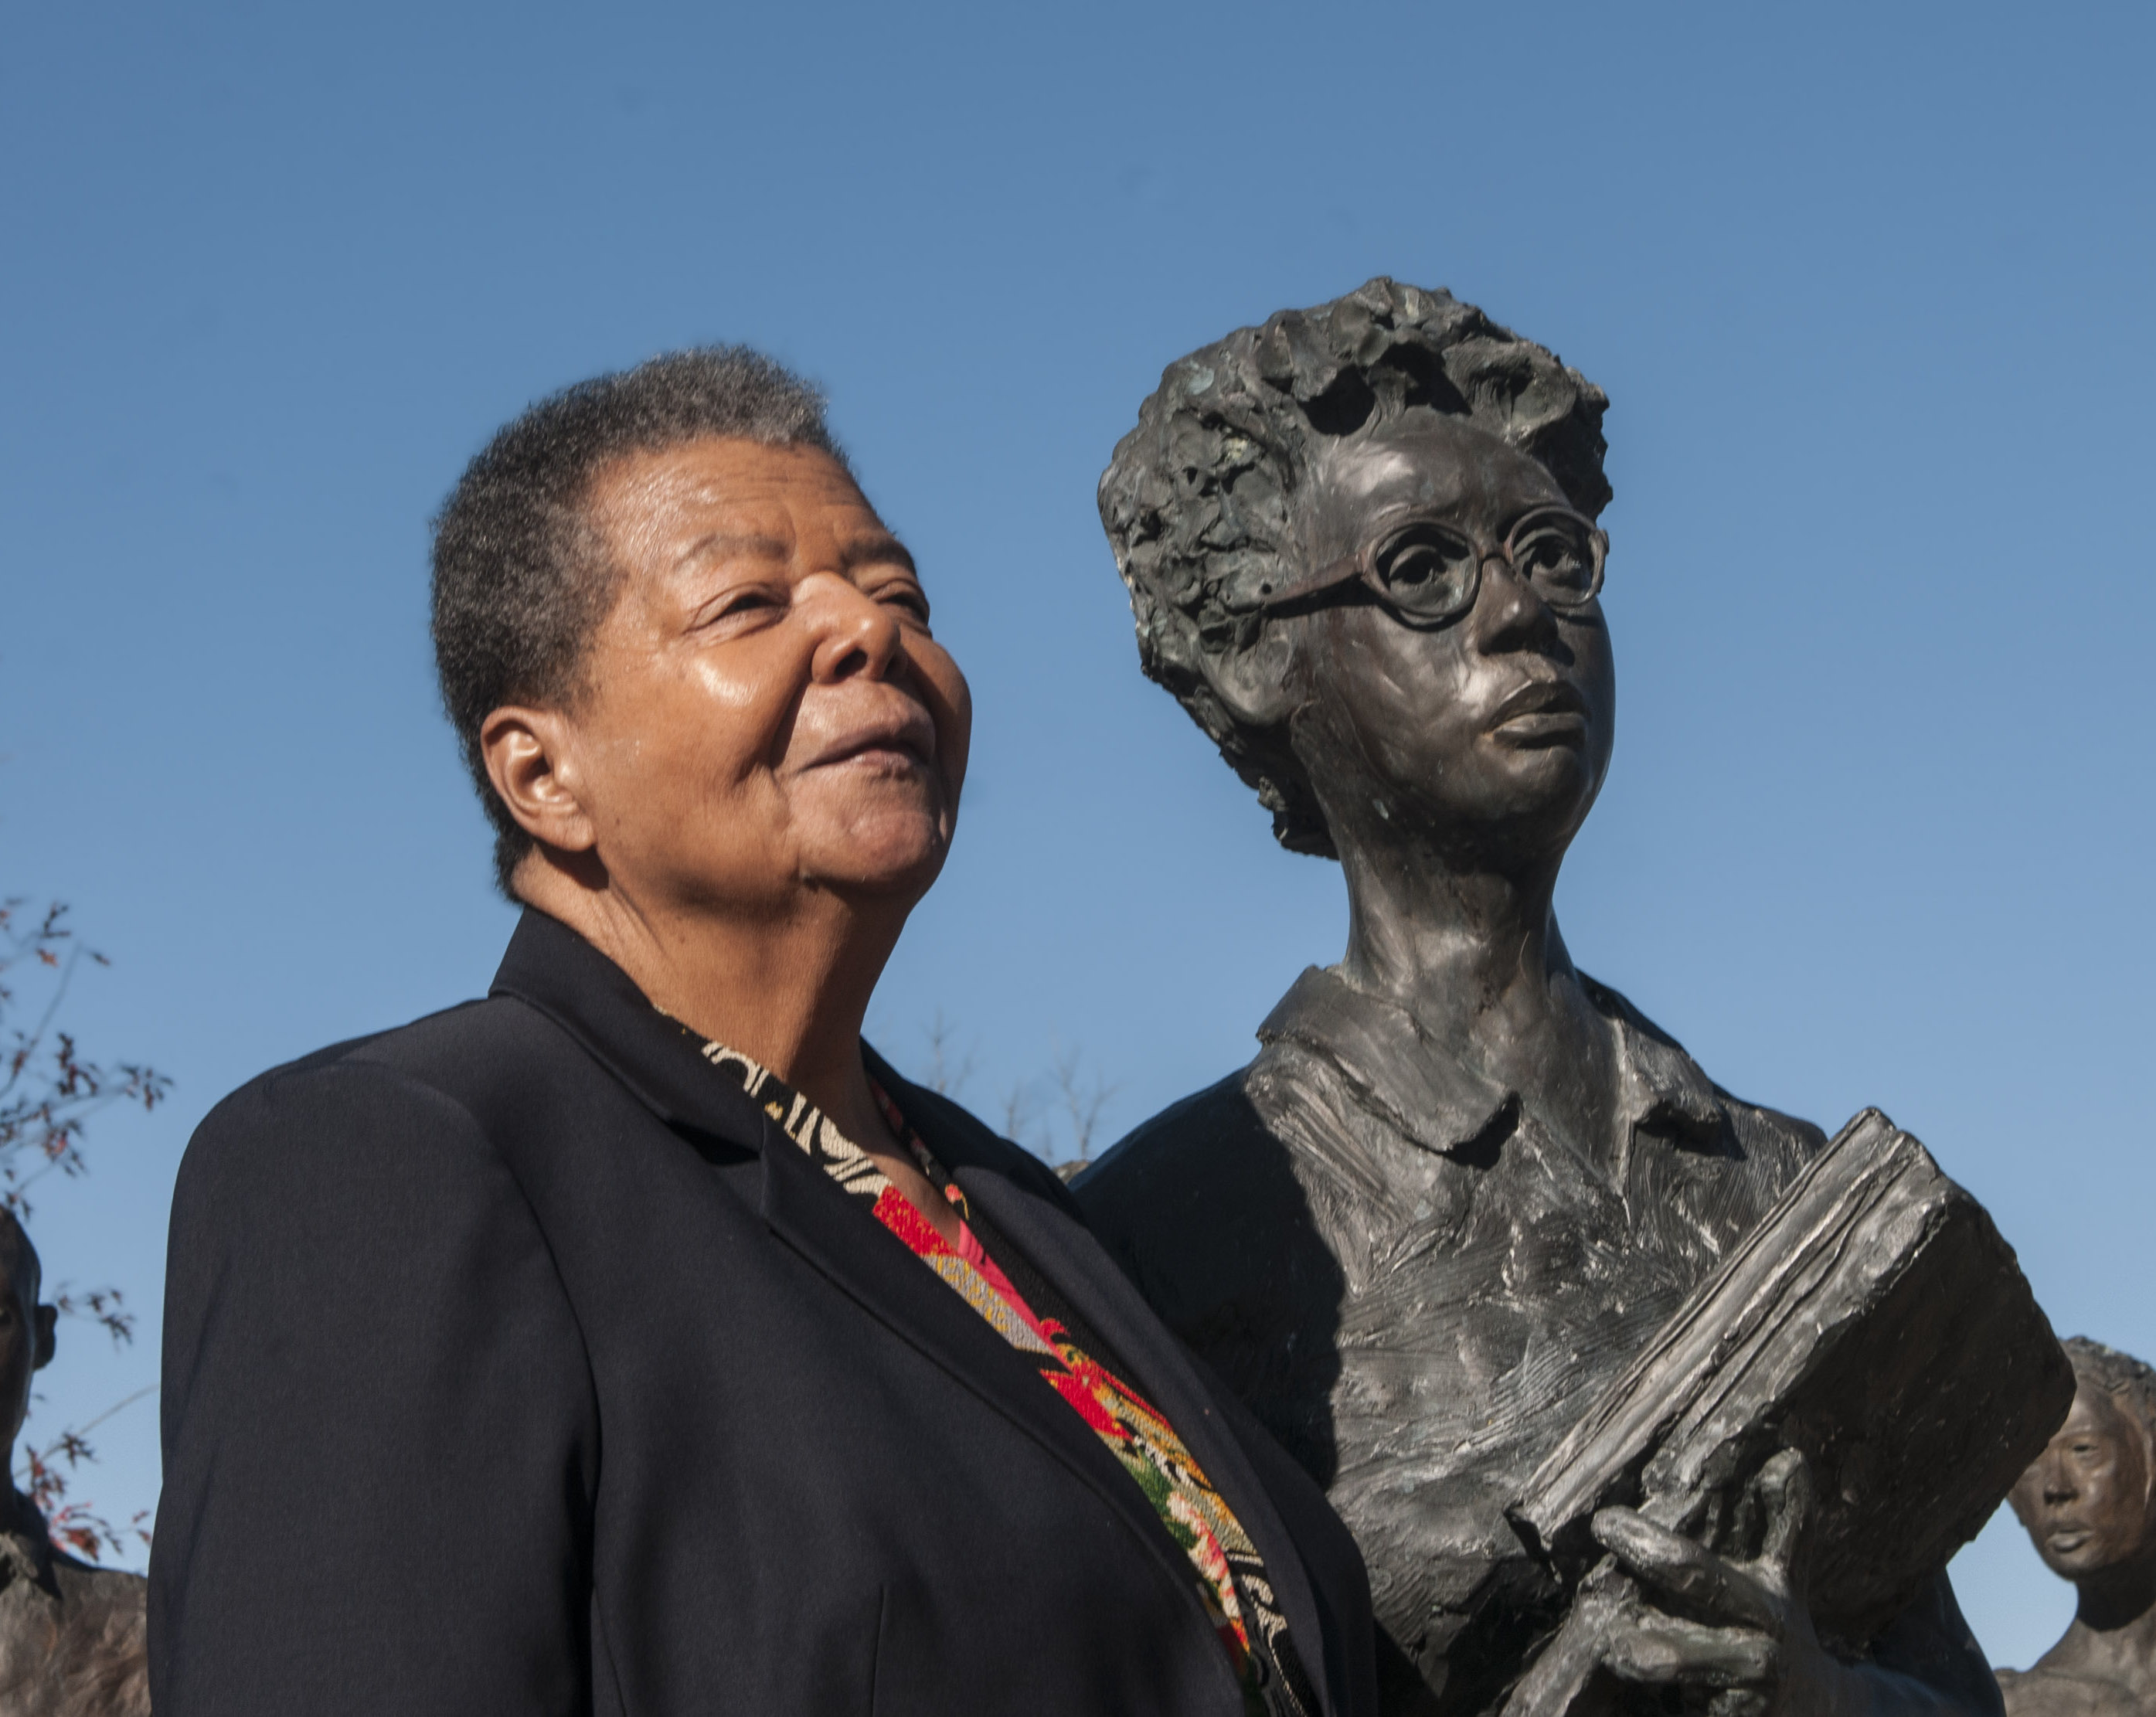 Elizabeth Eckford Fighting Against Segregation Decades Later